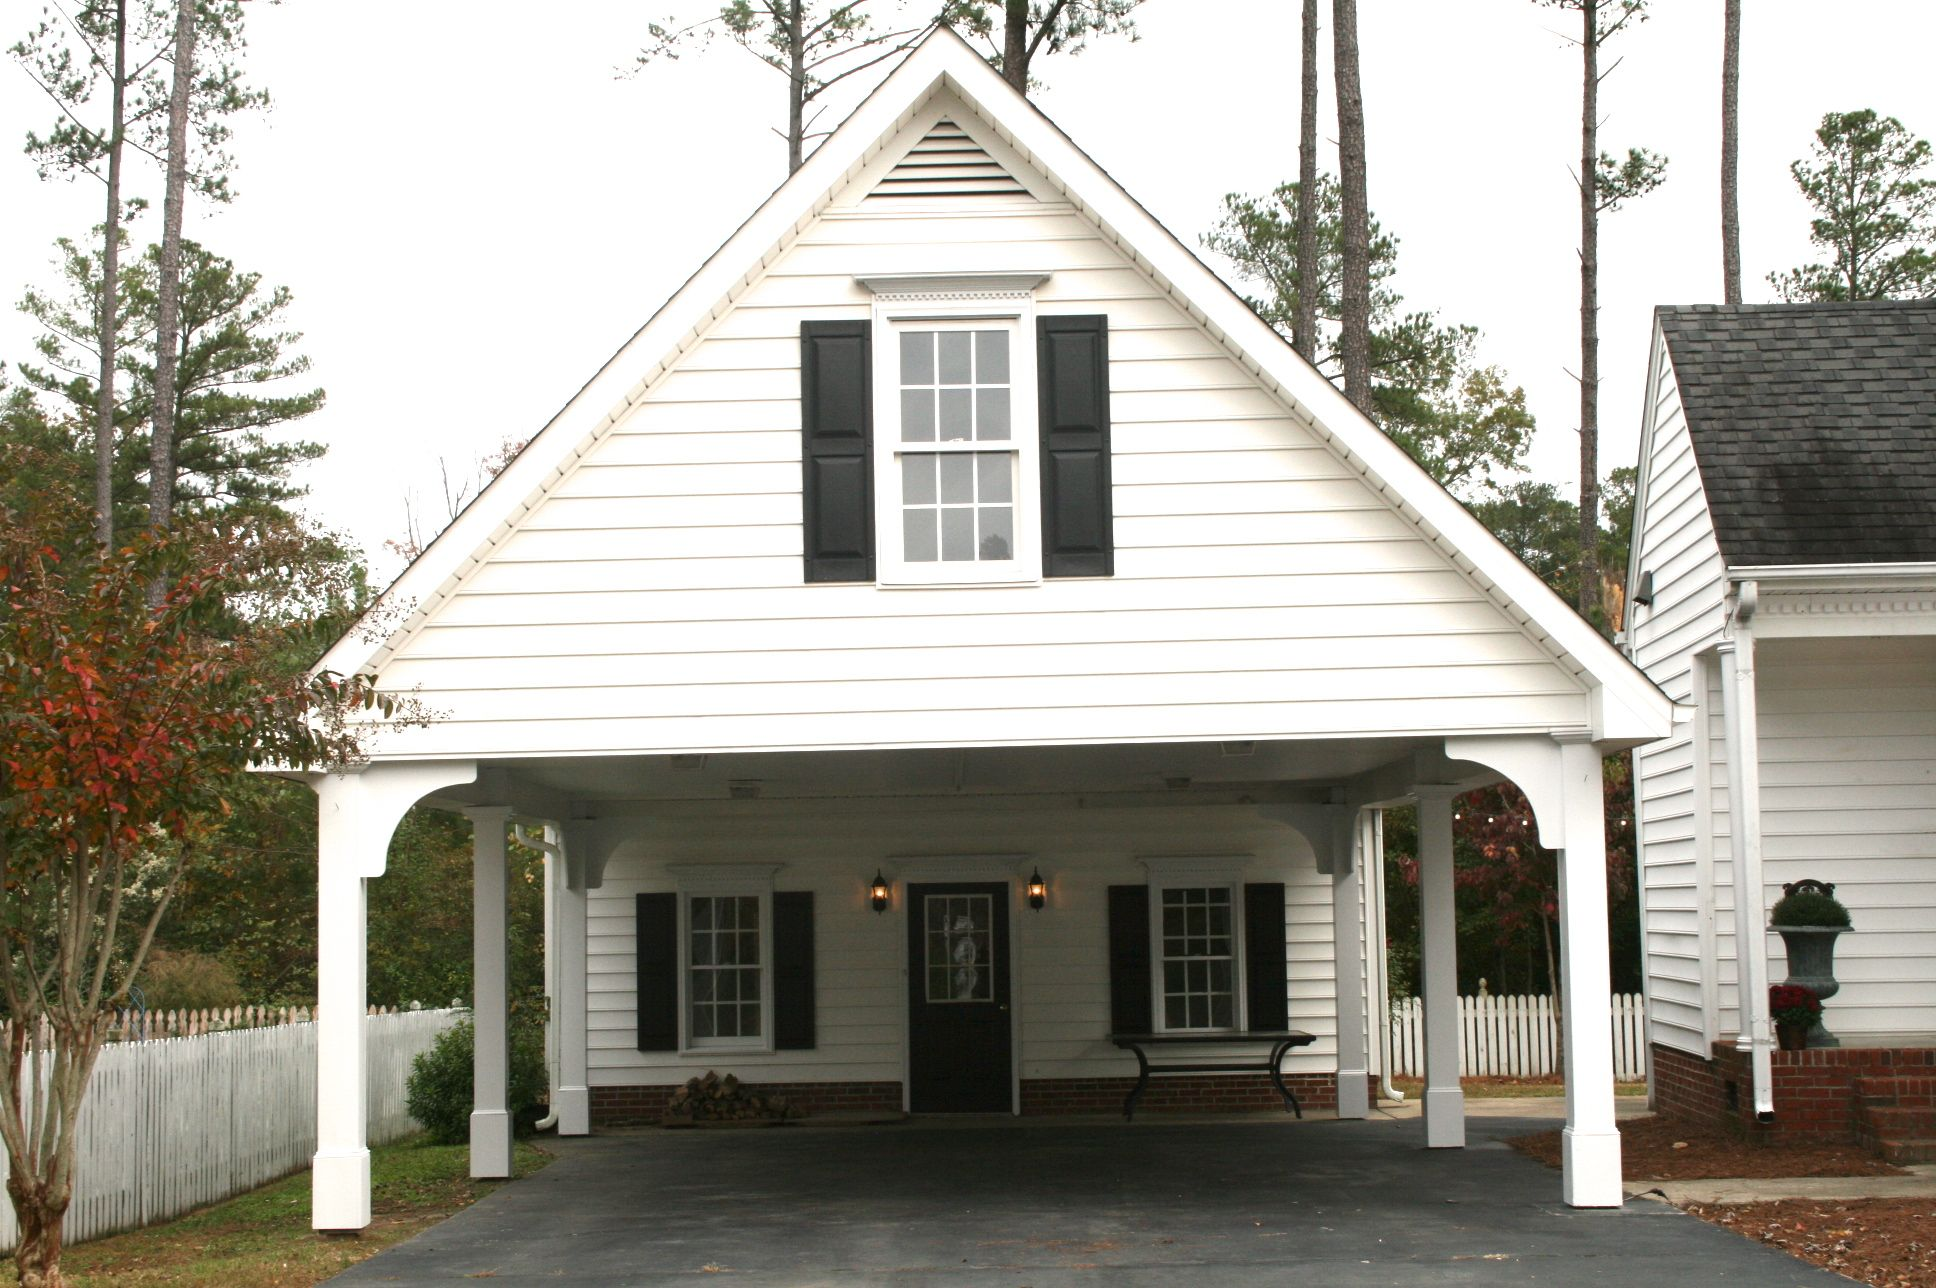 Share for Detached garage with carport